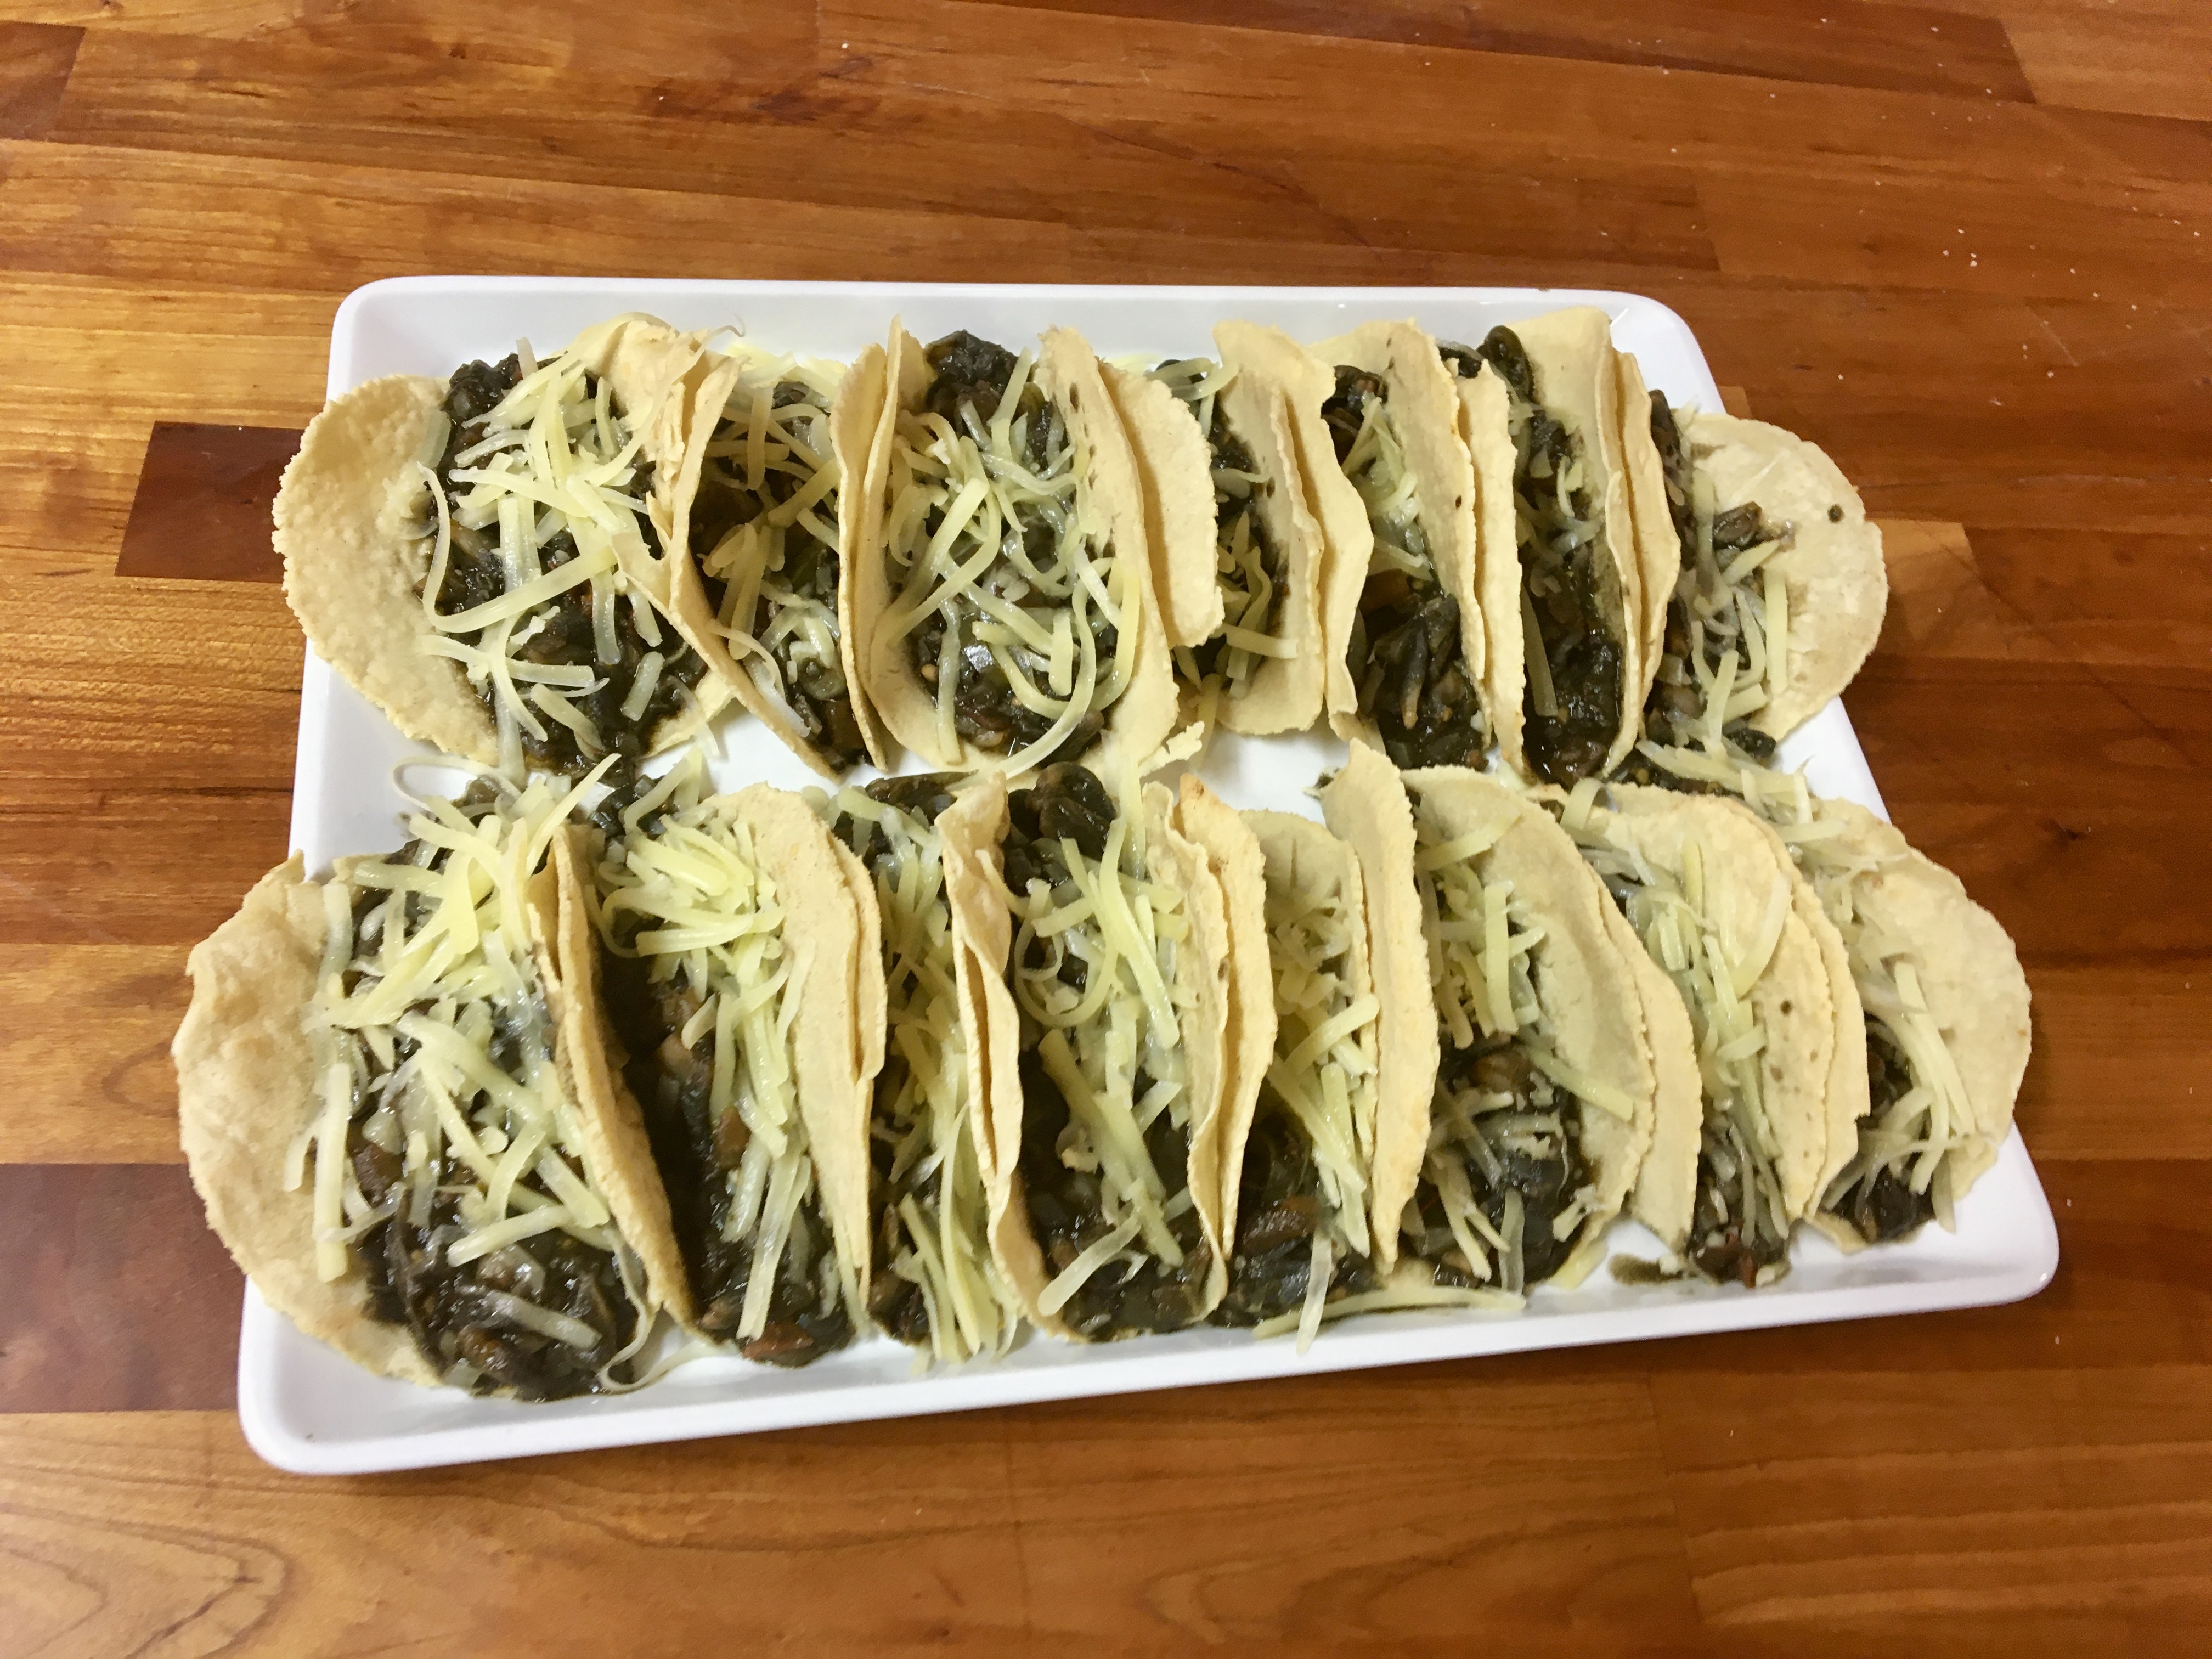 Mexican With Patricia – Quesadillas With Huitlacoche